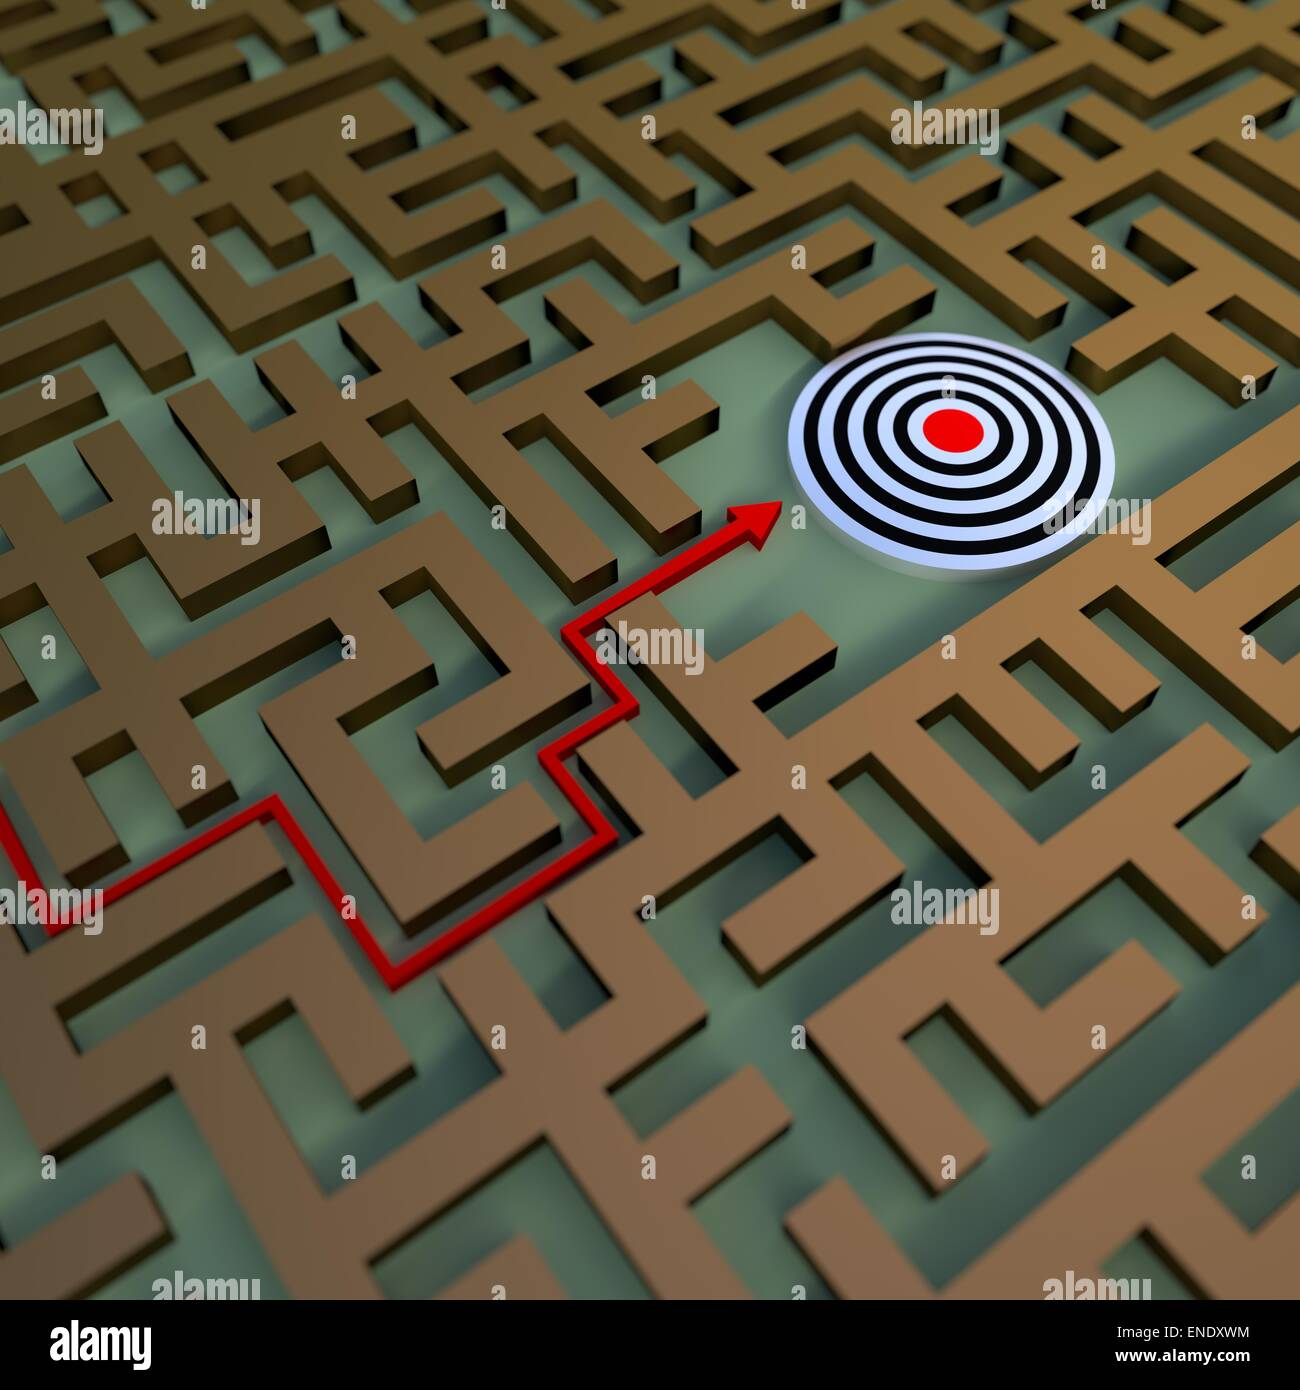 path to the target - Stock Image